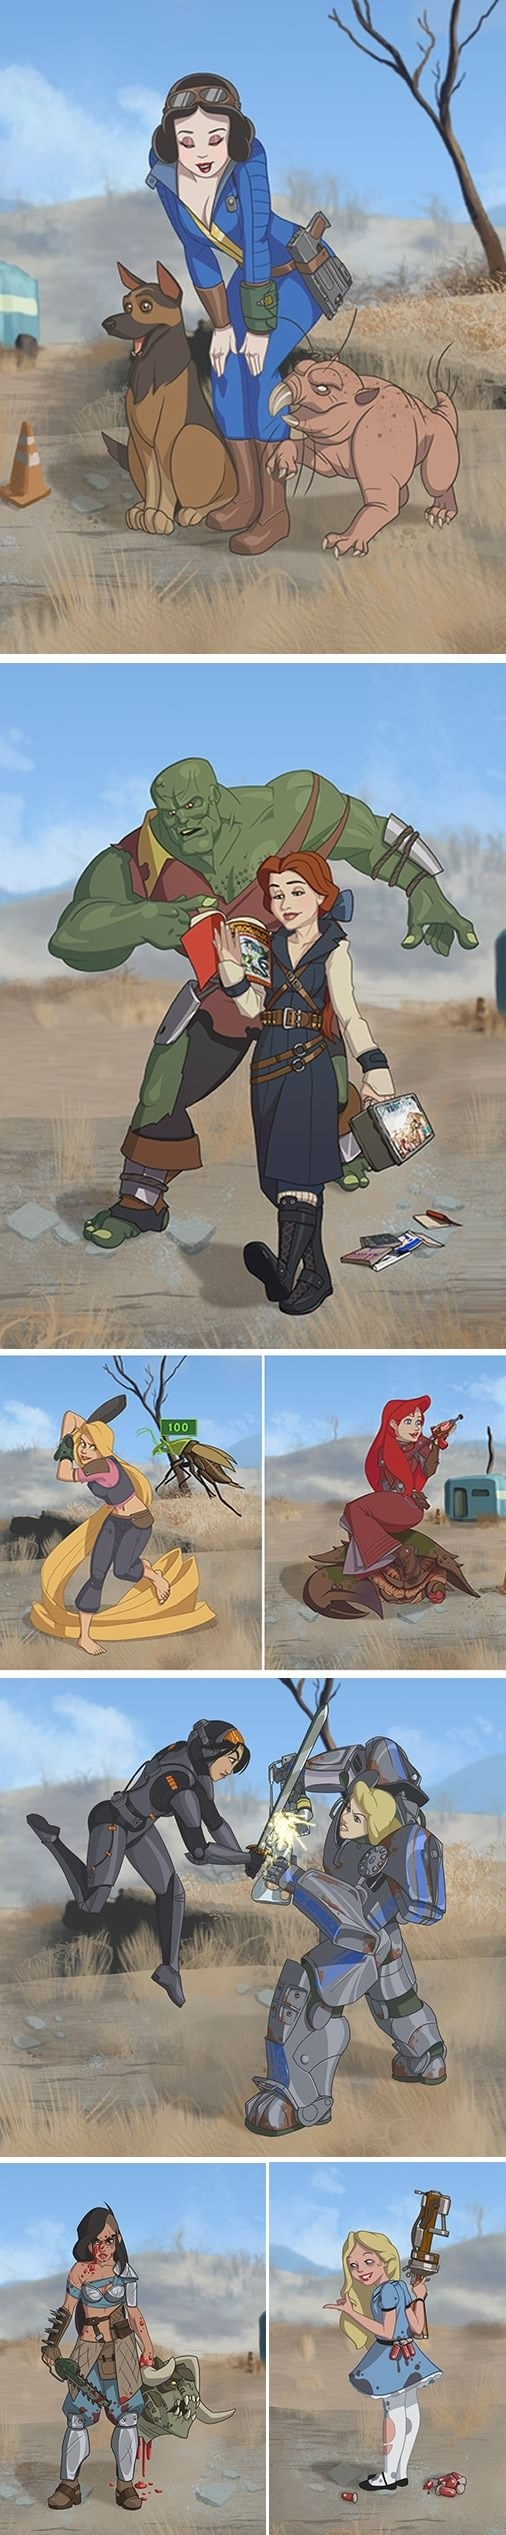 Fallout Disney princesses